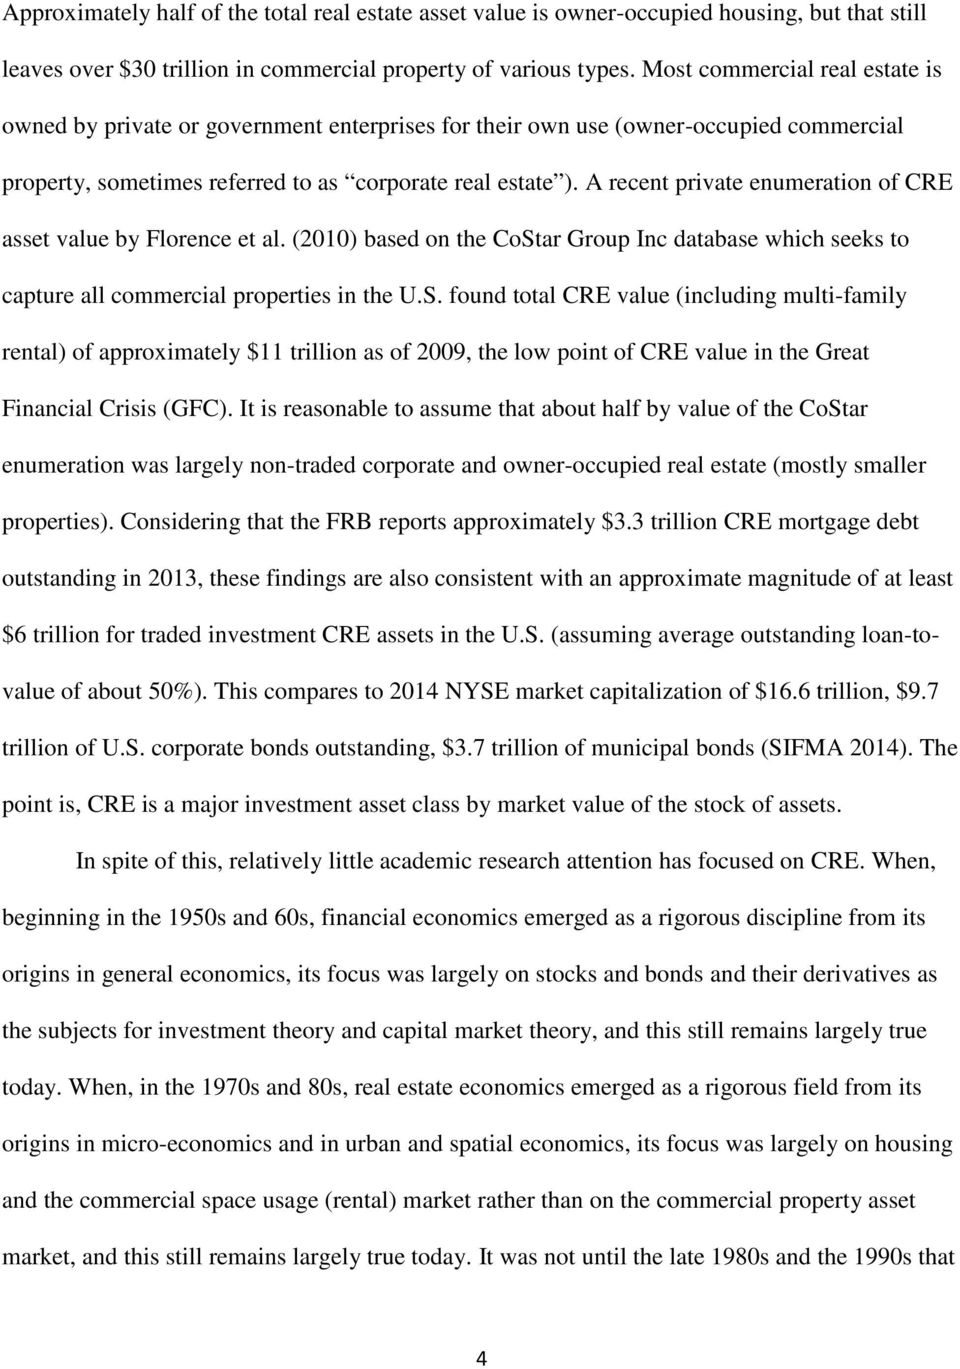 A recent private enumeration of CRE asset value by Florence et al. (2010) based on the CoSt